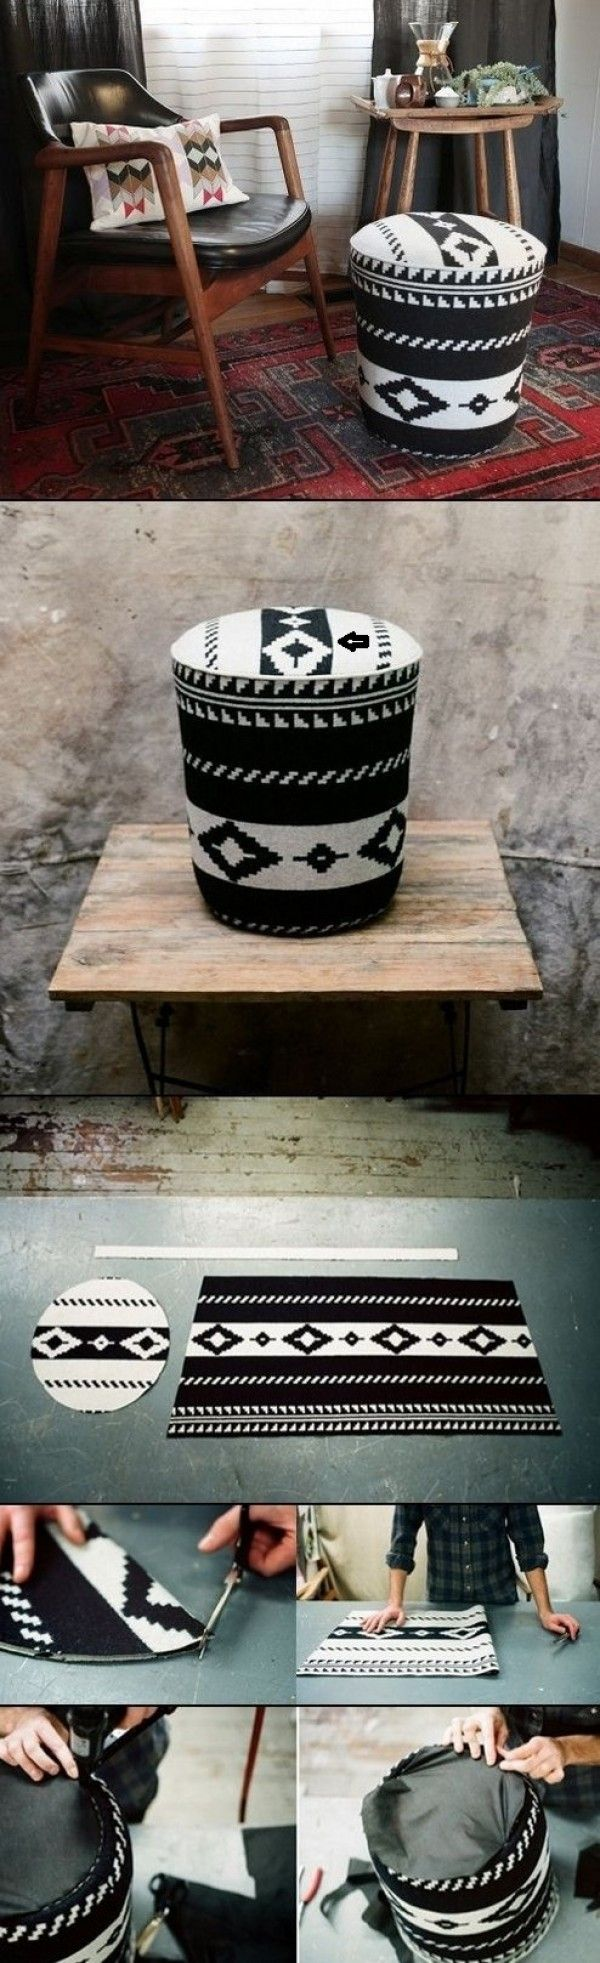 Make this easy DIY ottoman from a utility bucket @istandarddesign